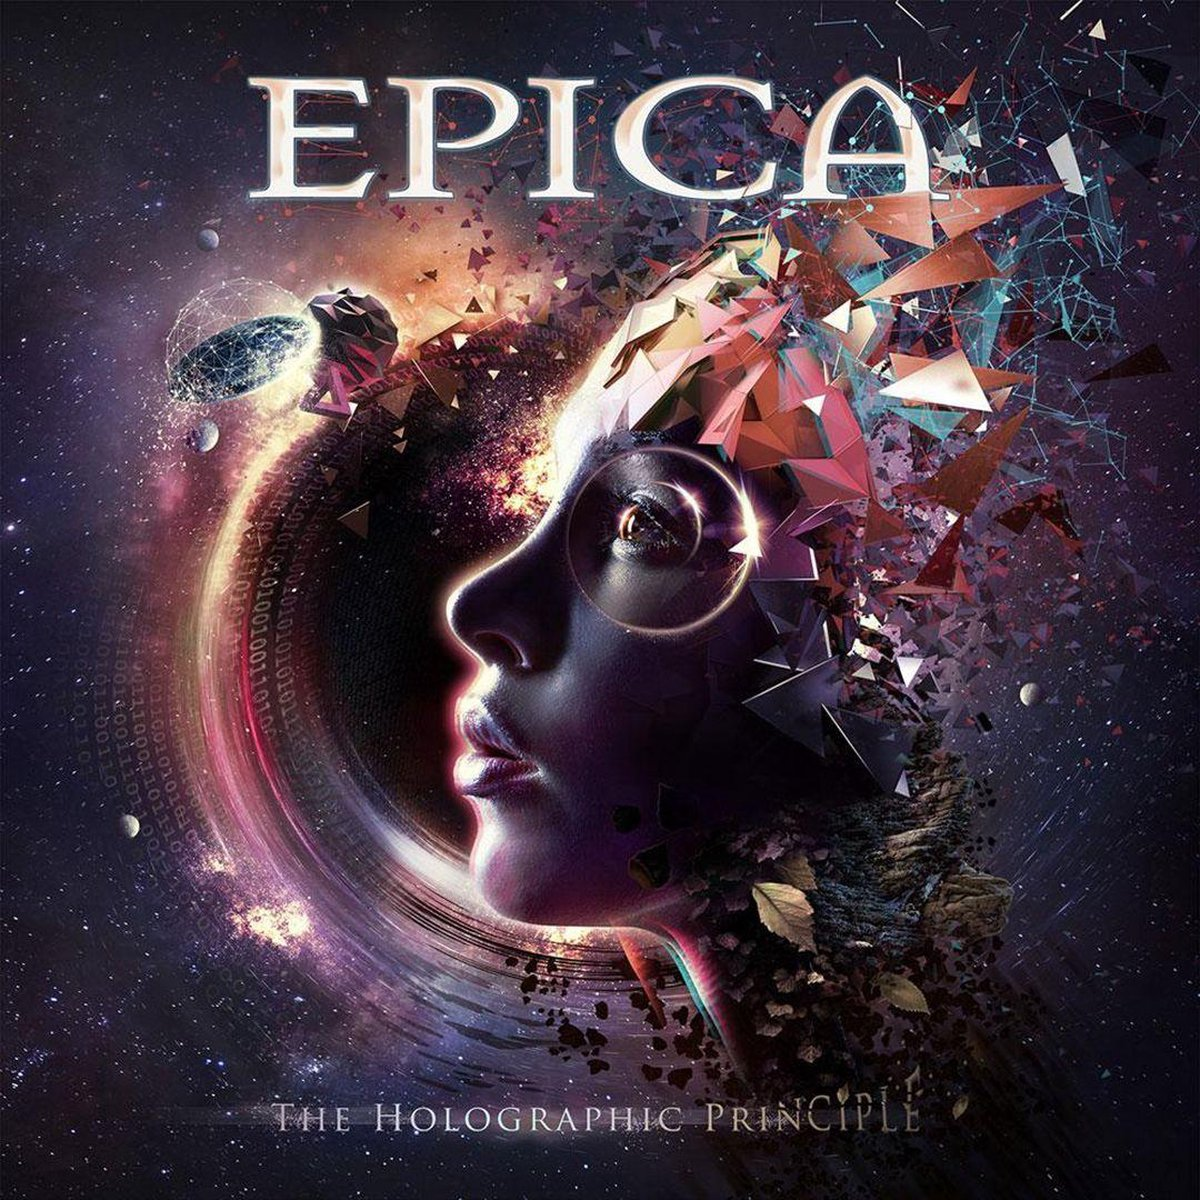 The Holographic Principle (2CD Limited Edition) - Epica